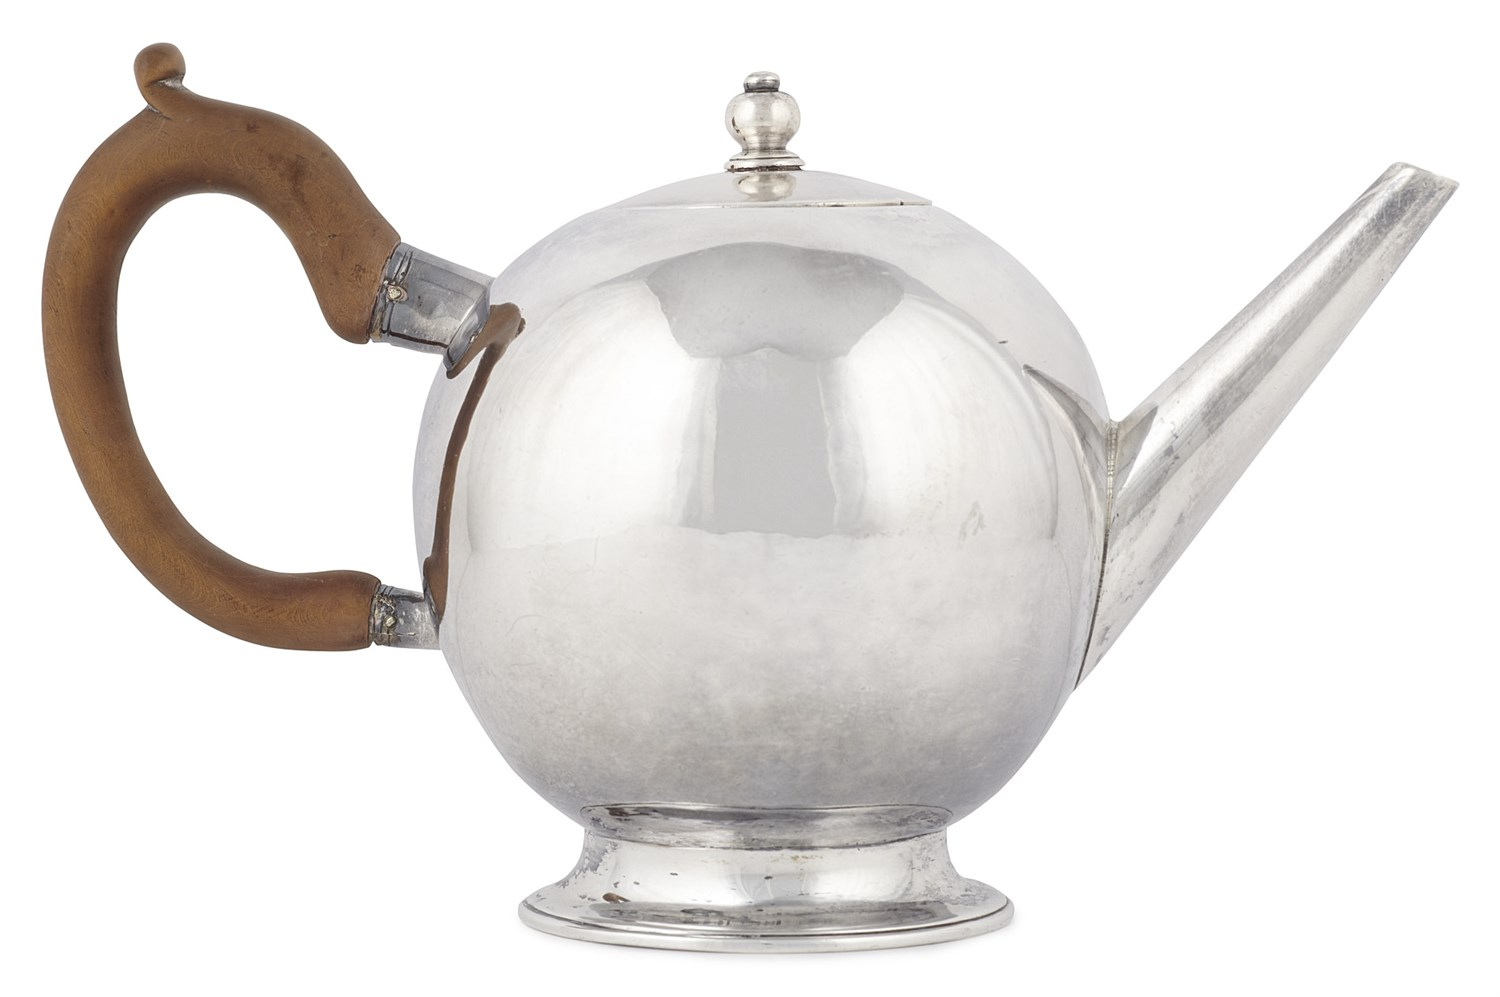 273 - An important early George I bullet teapot